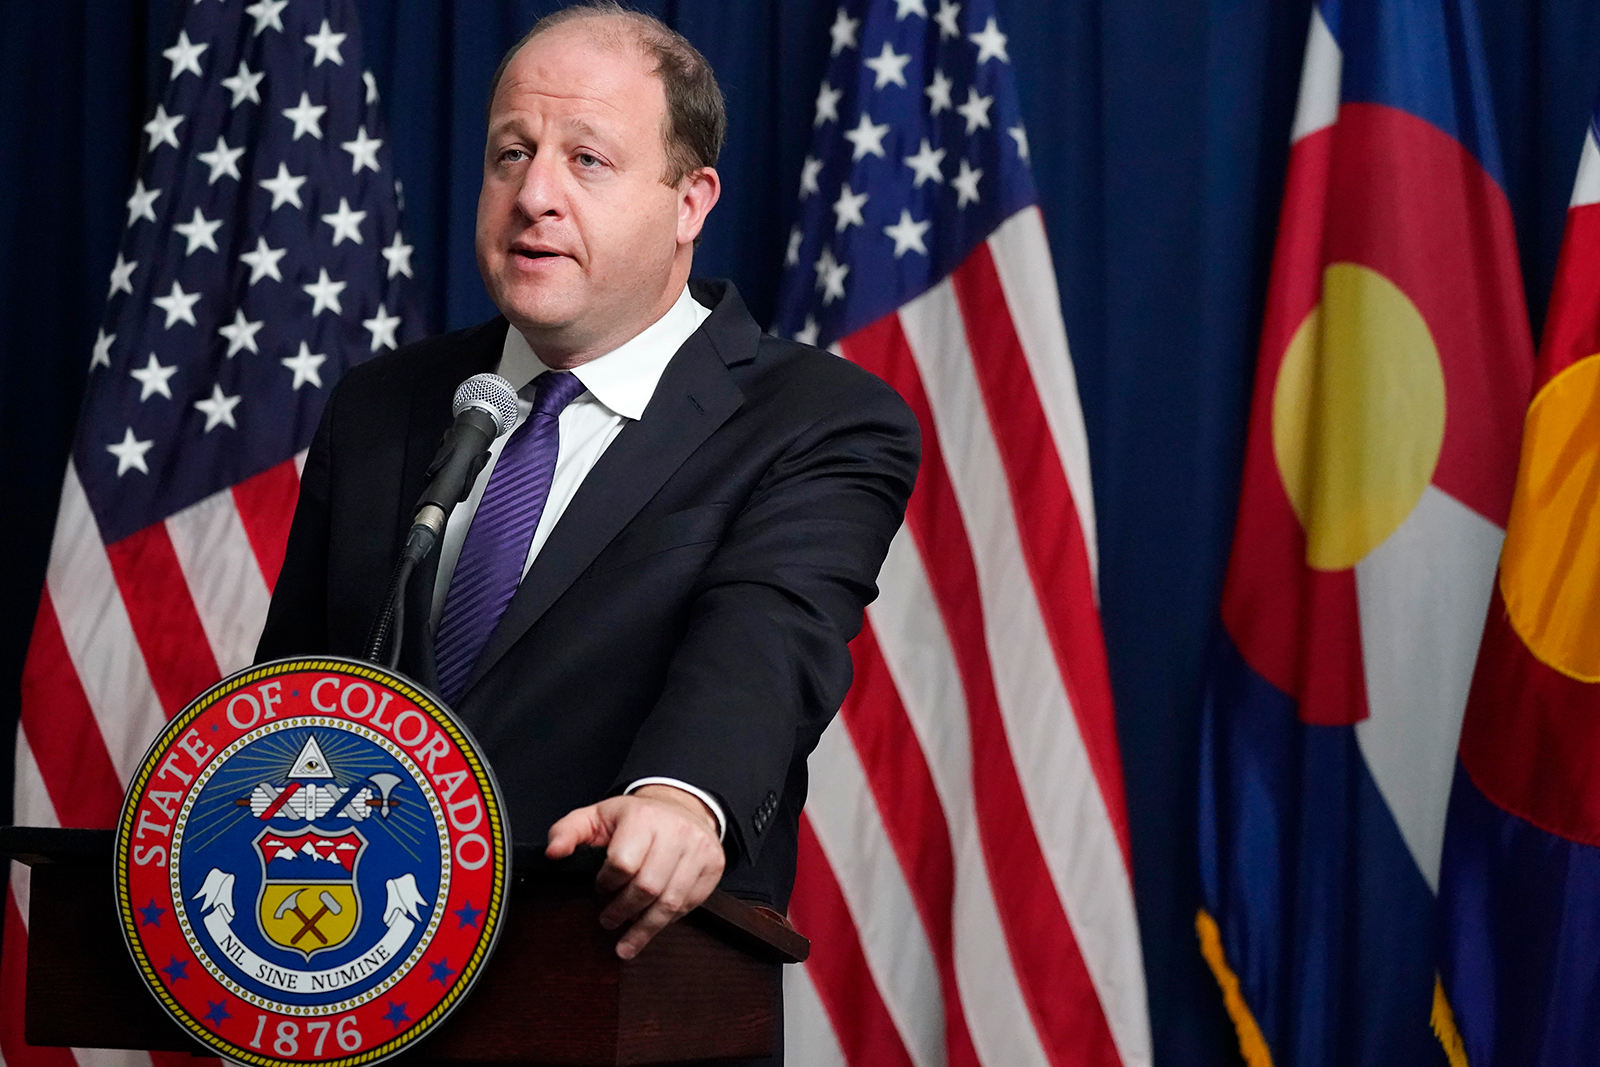 Colorado Governor Jared Polis speaks during a news conference in Denver, on November 13.